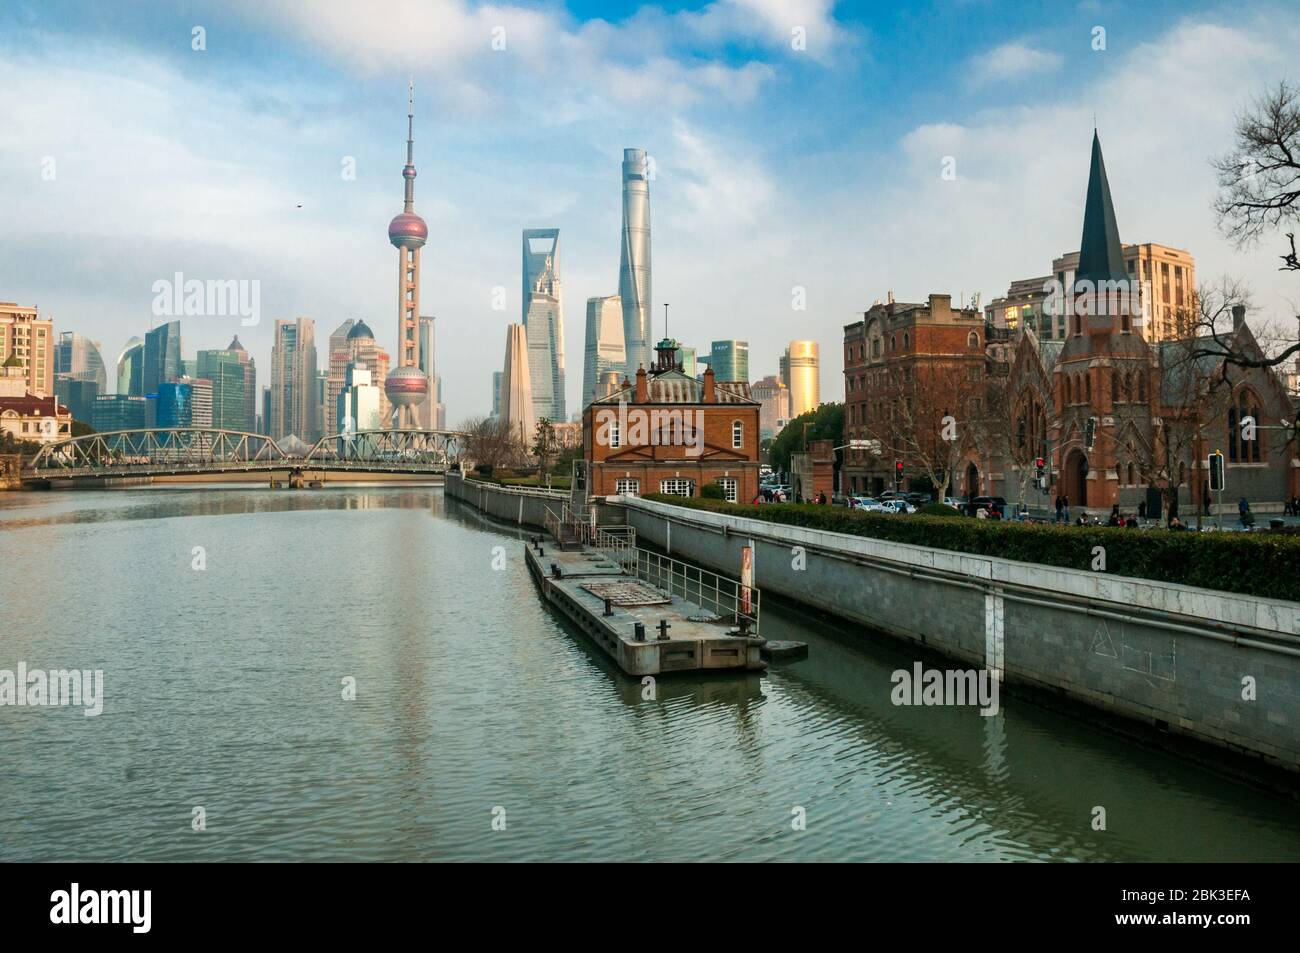 View along Suzhou Creek from the Zhapu Road bridge towards Garden Bridge and with the Pudong skyline in the background. Stock Photo